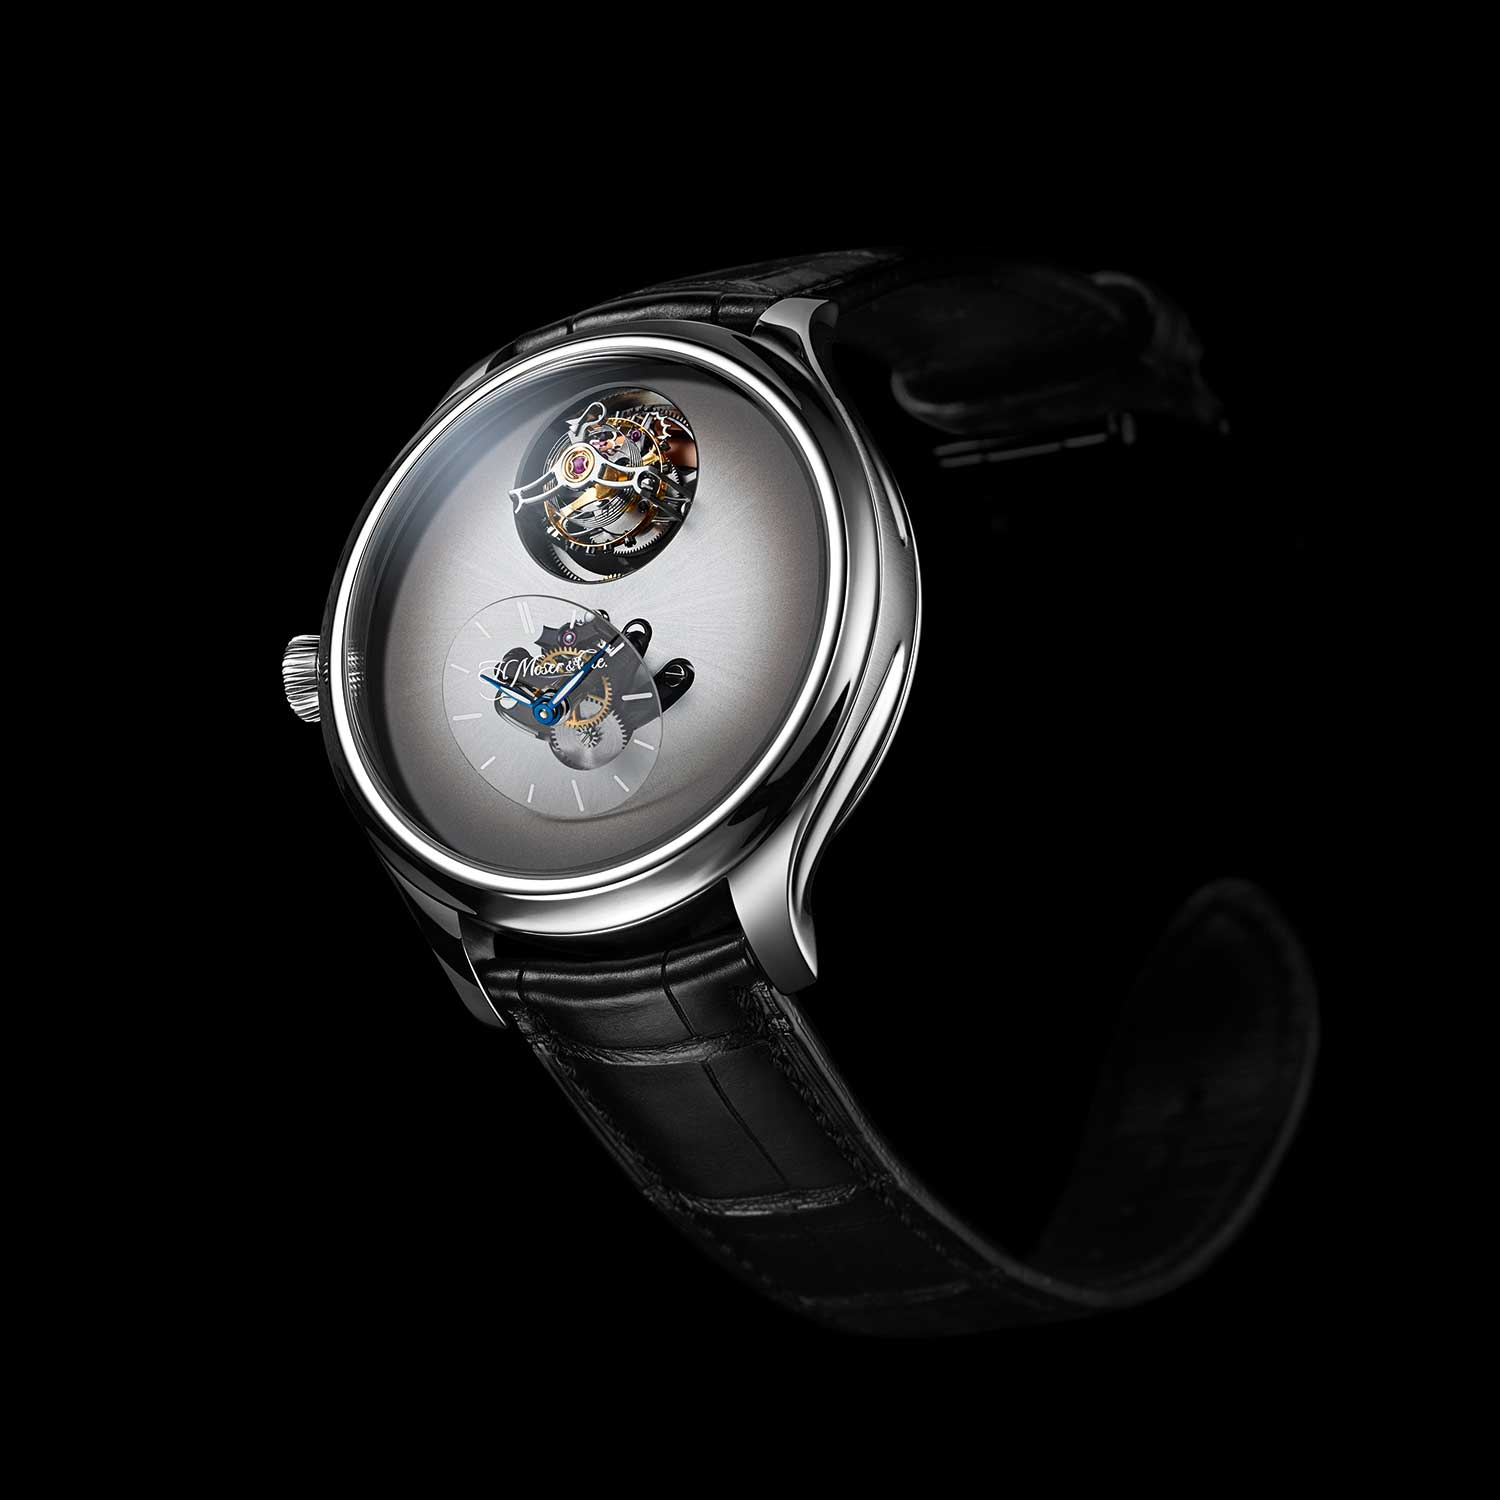 MB&F × H. Moser Endeavour Cylindrical Tourbillon with the Off-White dial